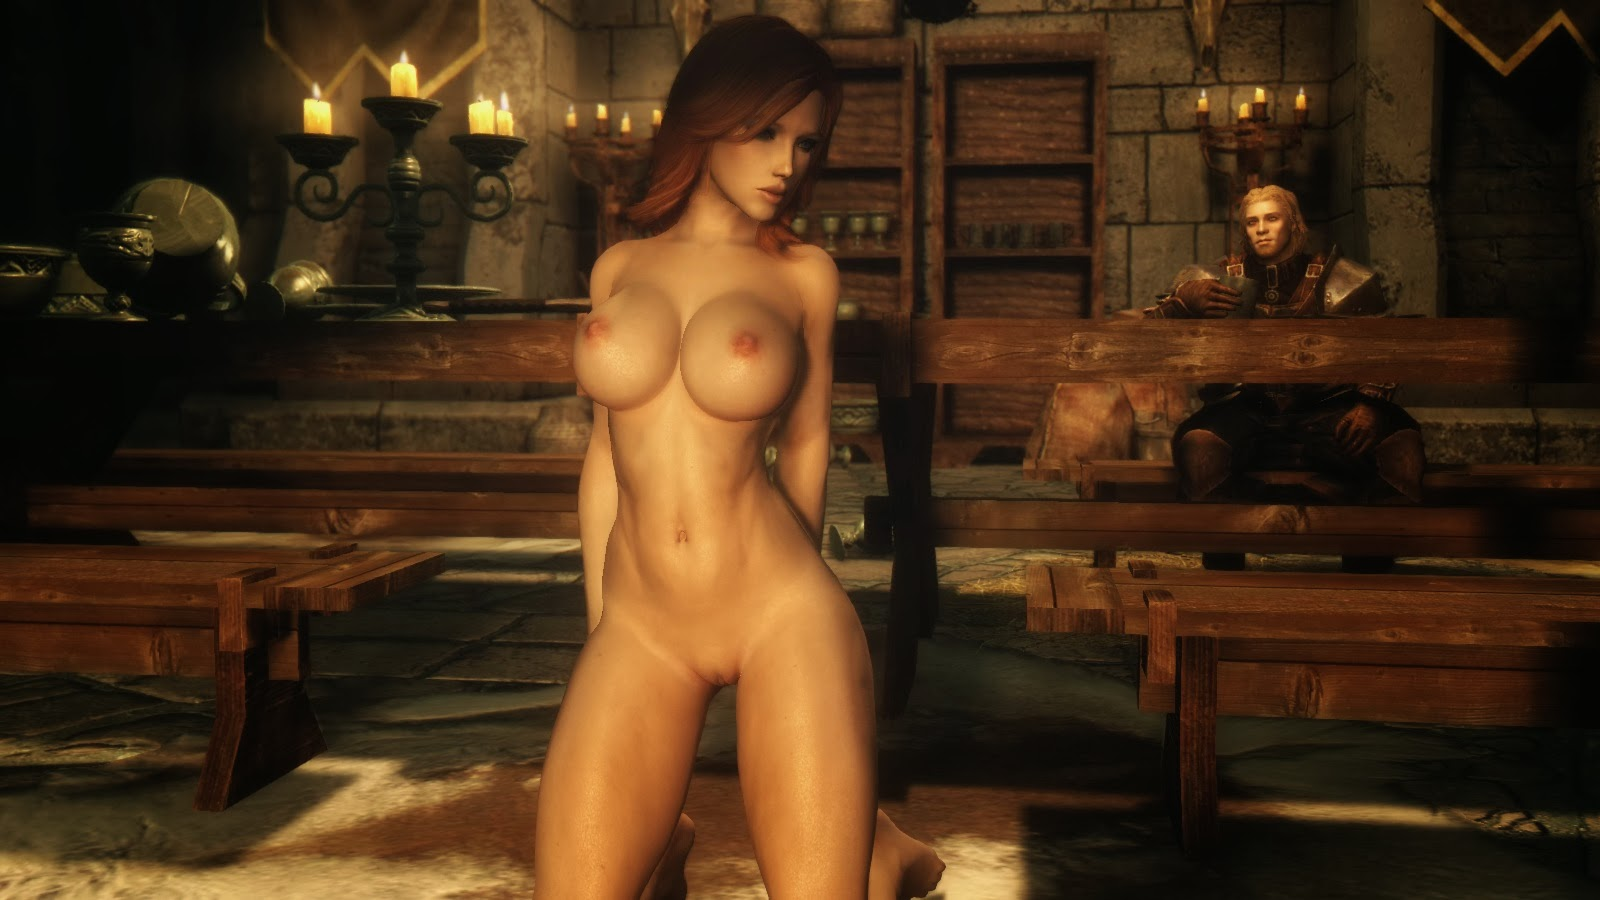 Skyrim hd nud hardcore photos